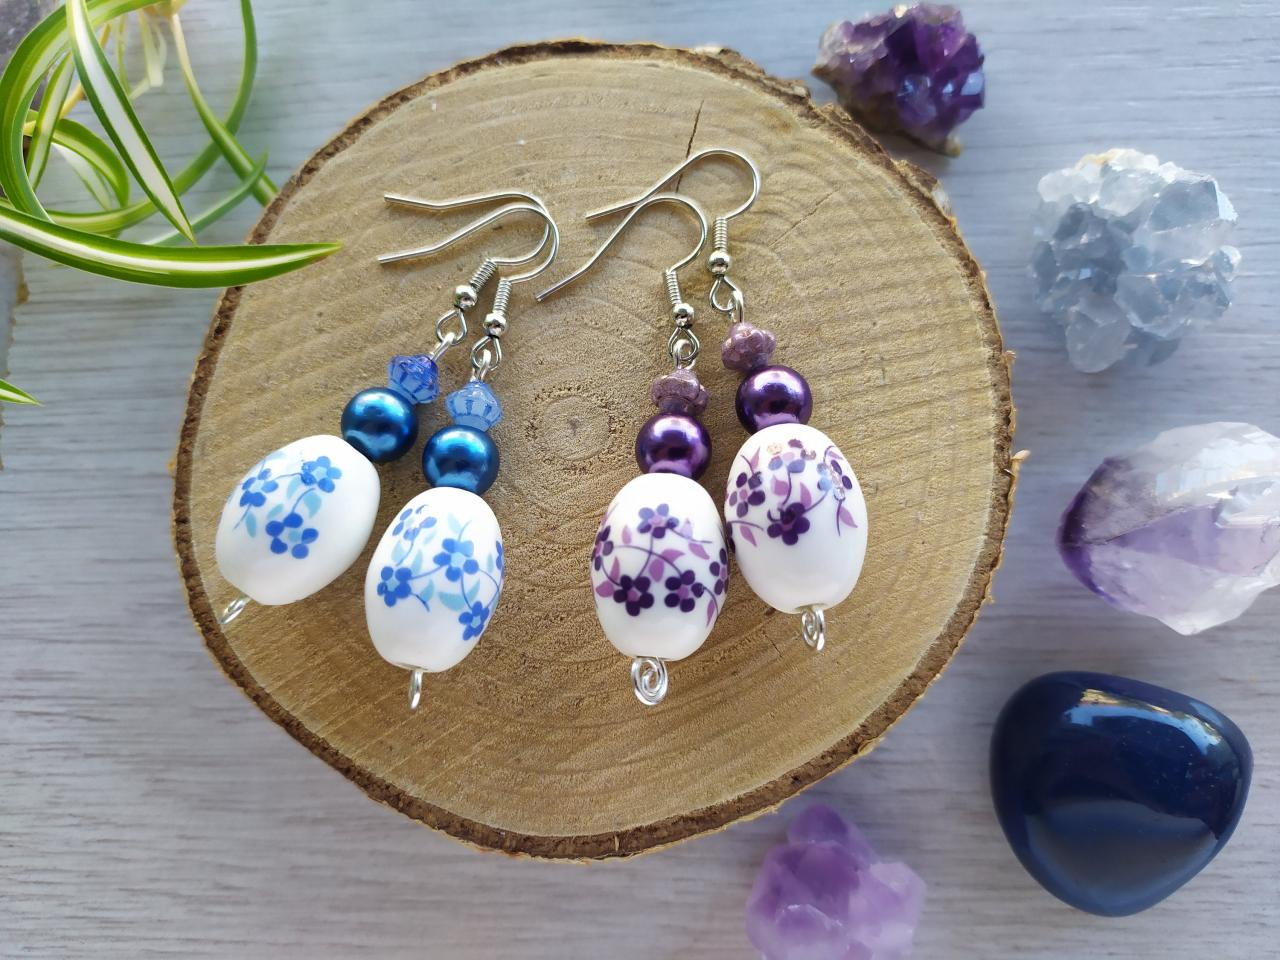 Purple boho dangles, Dark blue boho earrings, Floral porcelain bead dangle earrings, Elegant Dark blue earrings, Dainty delicate earrings